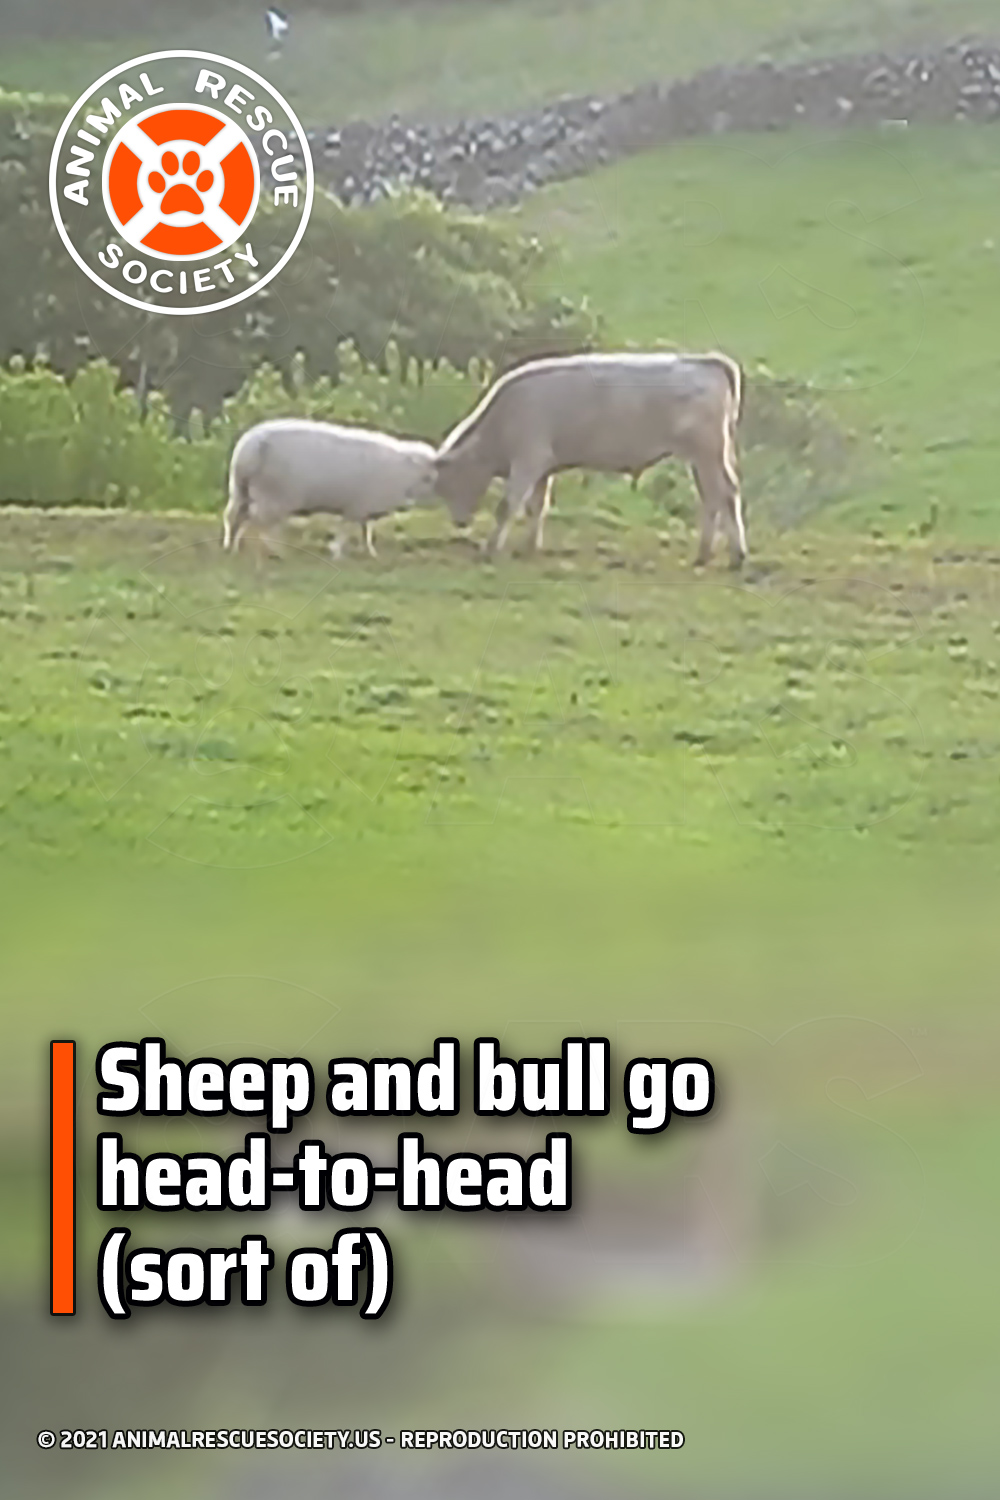 Sheep and bull go head-to-head (sort of)